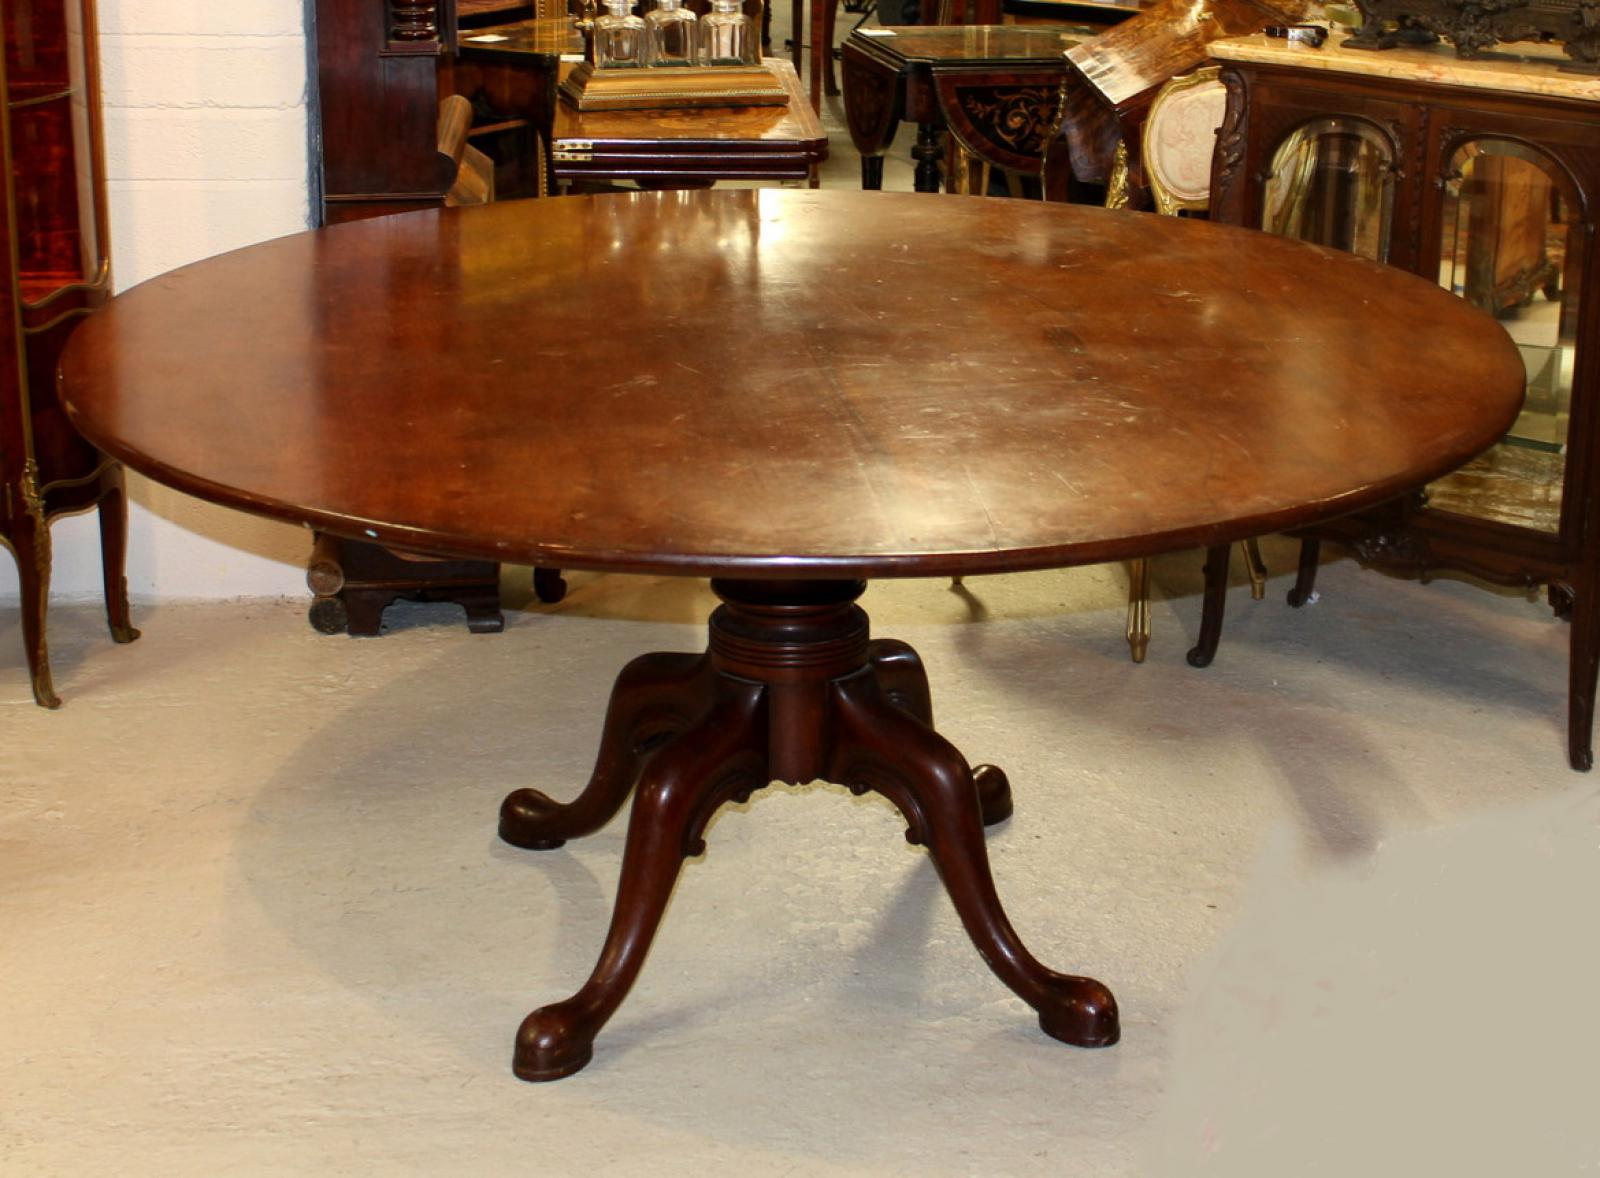 Antique Georgian Round Mahogany Dining Table Tilt Top eBay :  1481222160 zoom 79 from www.ebay.co.uk size 1600 x 1178 jpeg 170kB